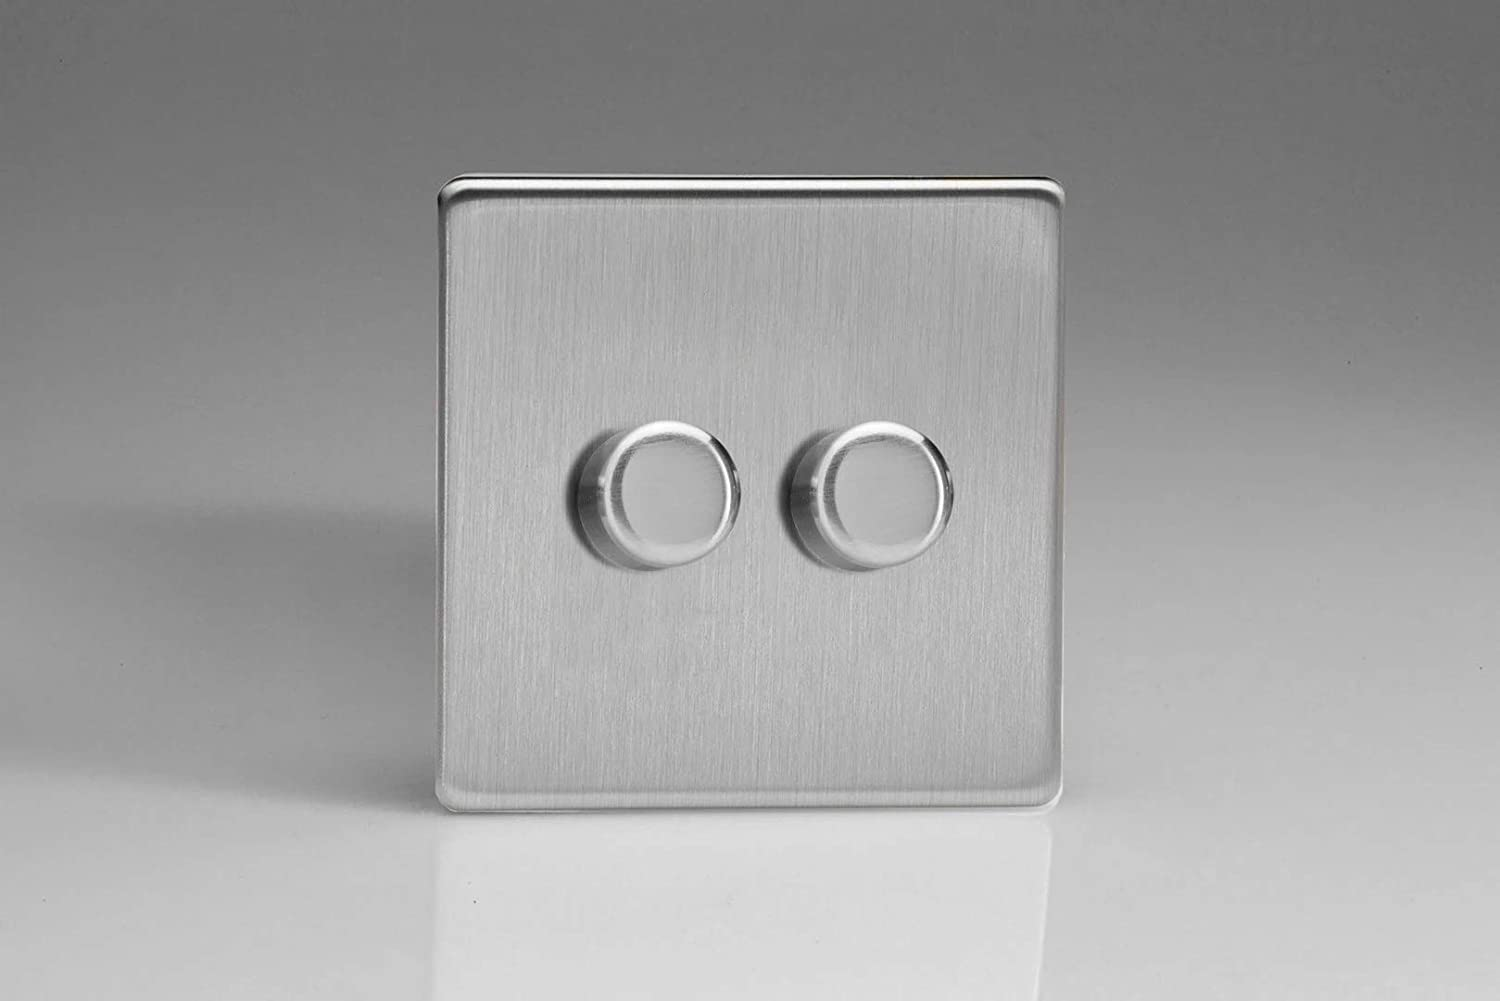 250/W Varilight Brushed Steel screwless LED dimmer switch/ 2/velocidades 1/or 2/Way /V de Pro Series Single by Varilight Trailing Edge